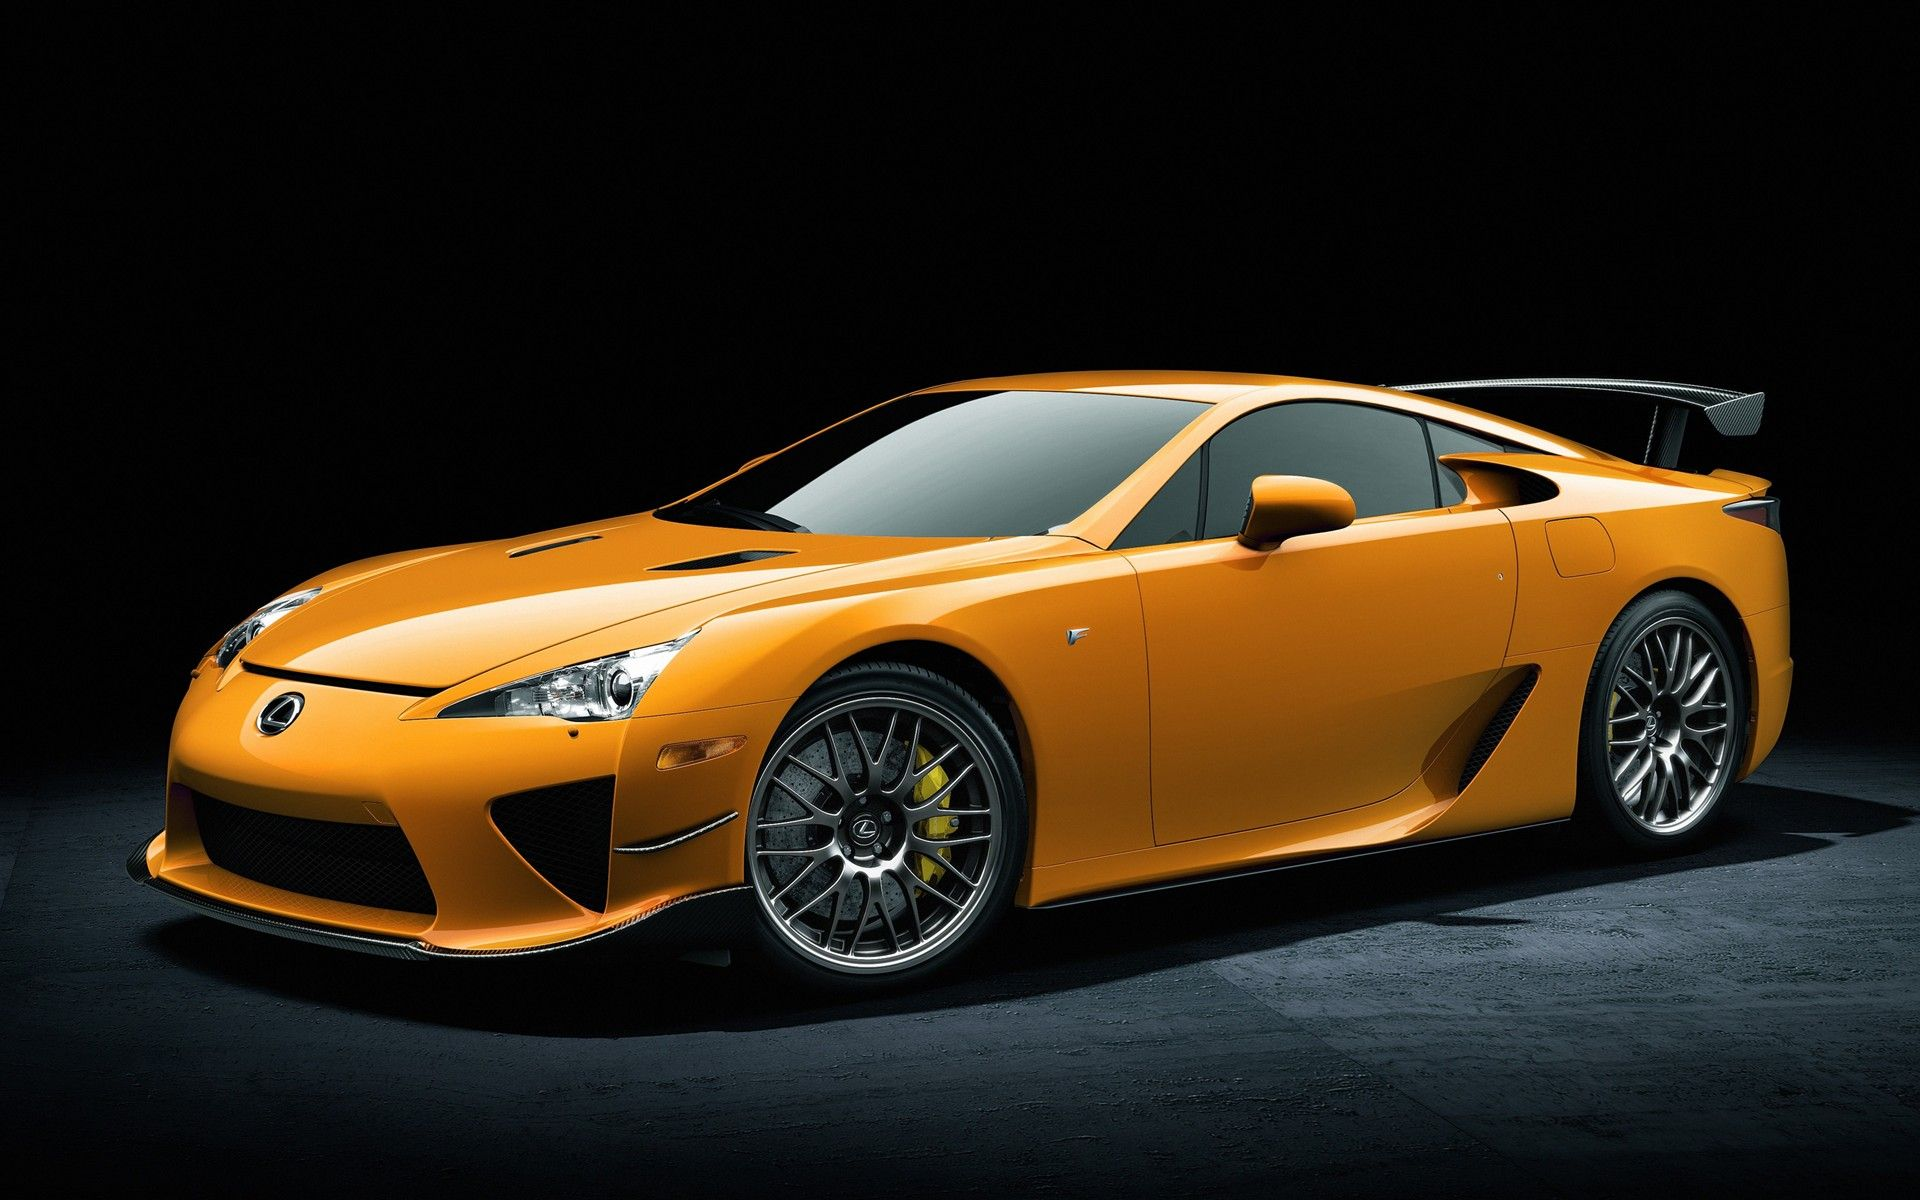 lexus lfa cars pinterest lexus lfa lexus cars and cars rh pinterest com